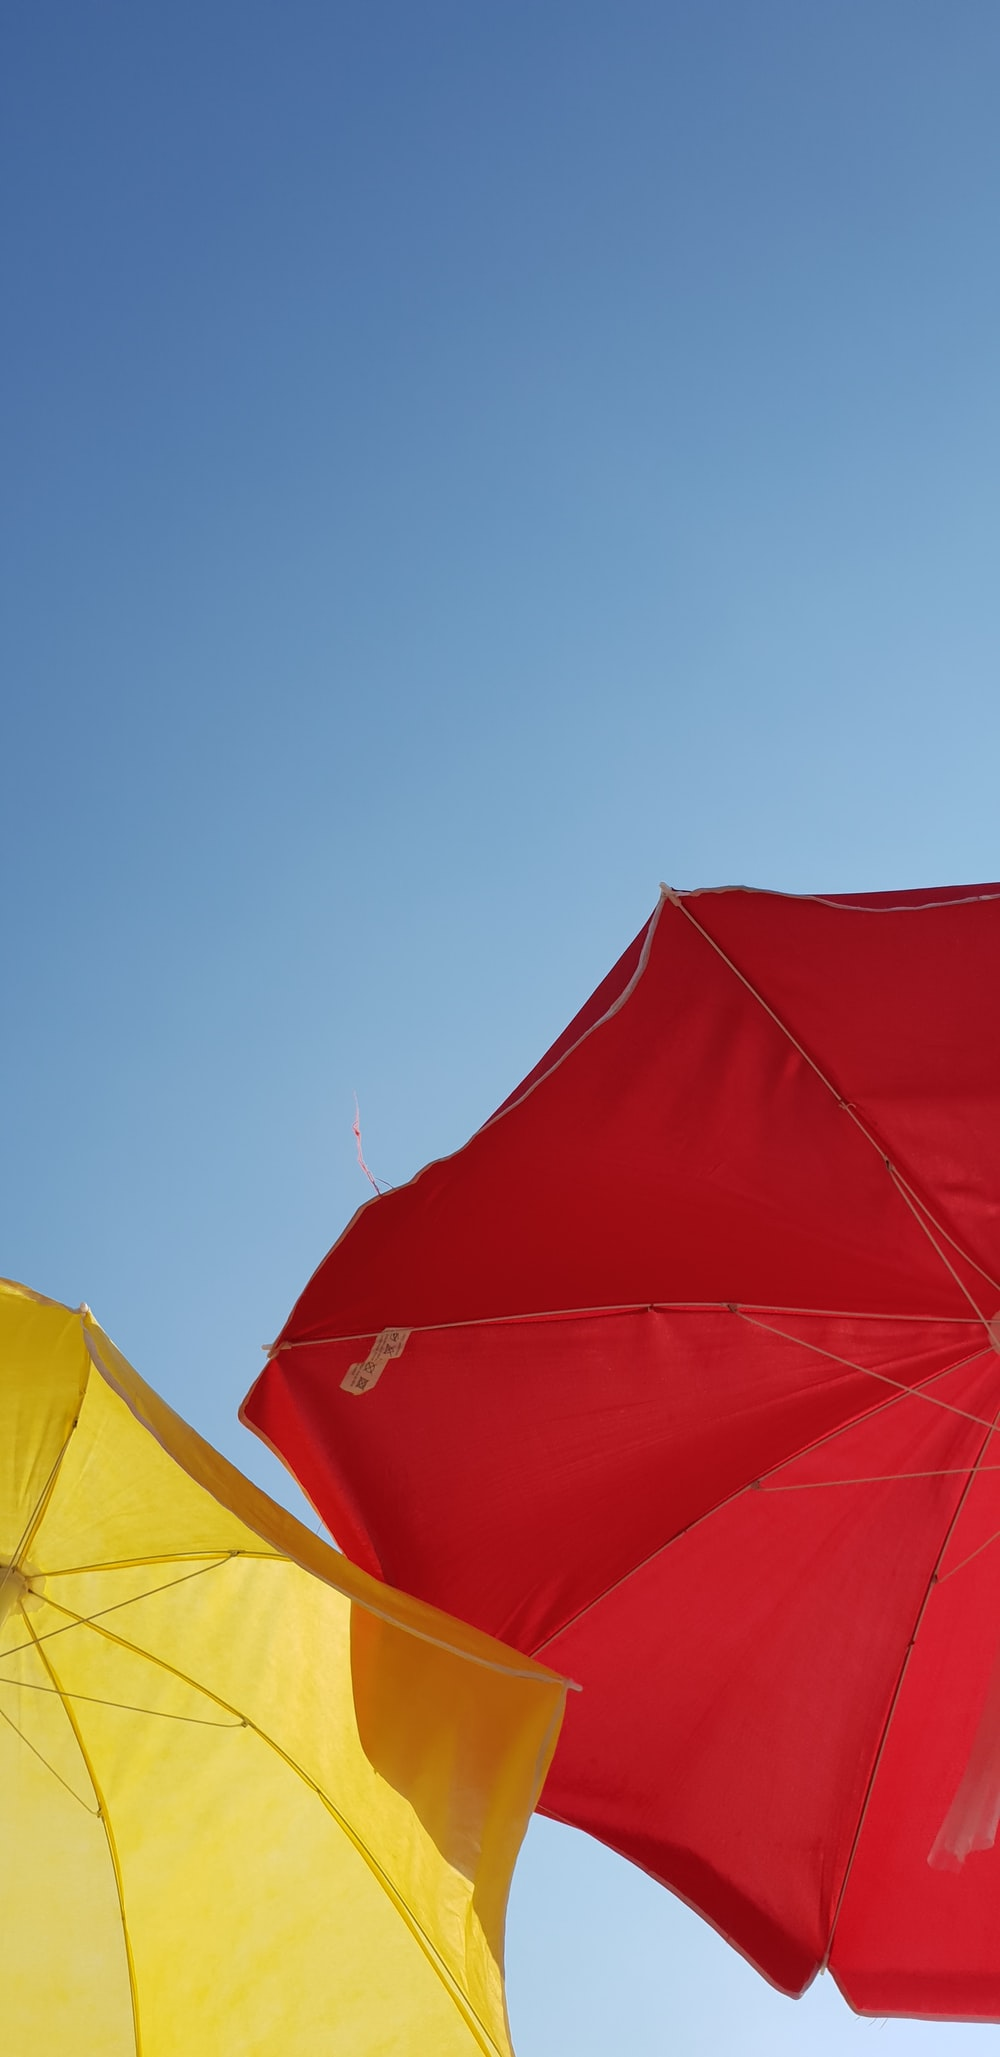 low angle photography of red umbrella